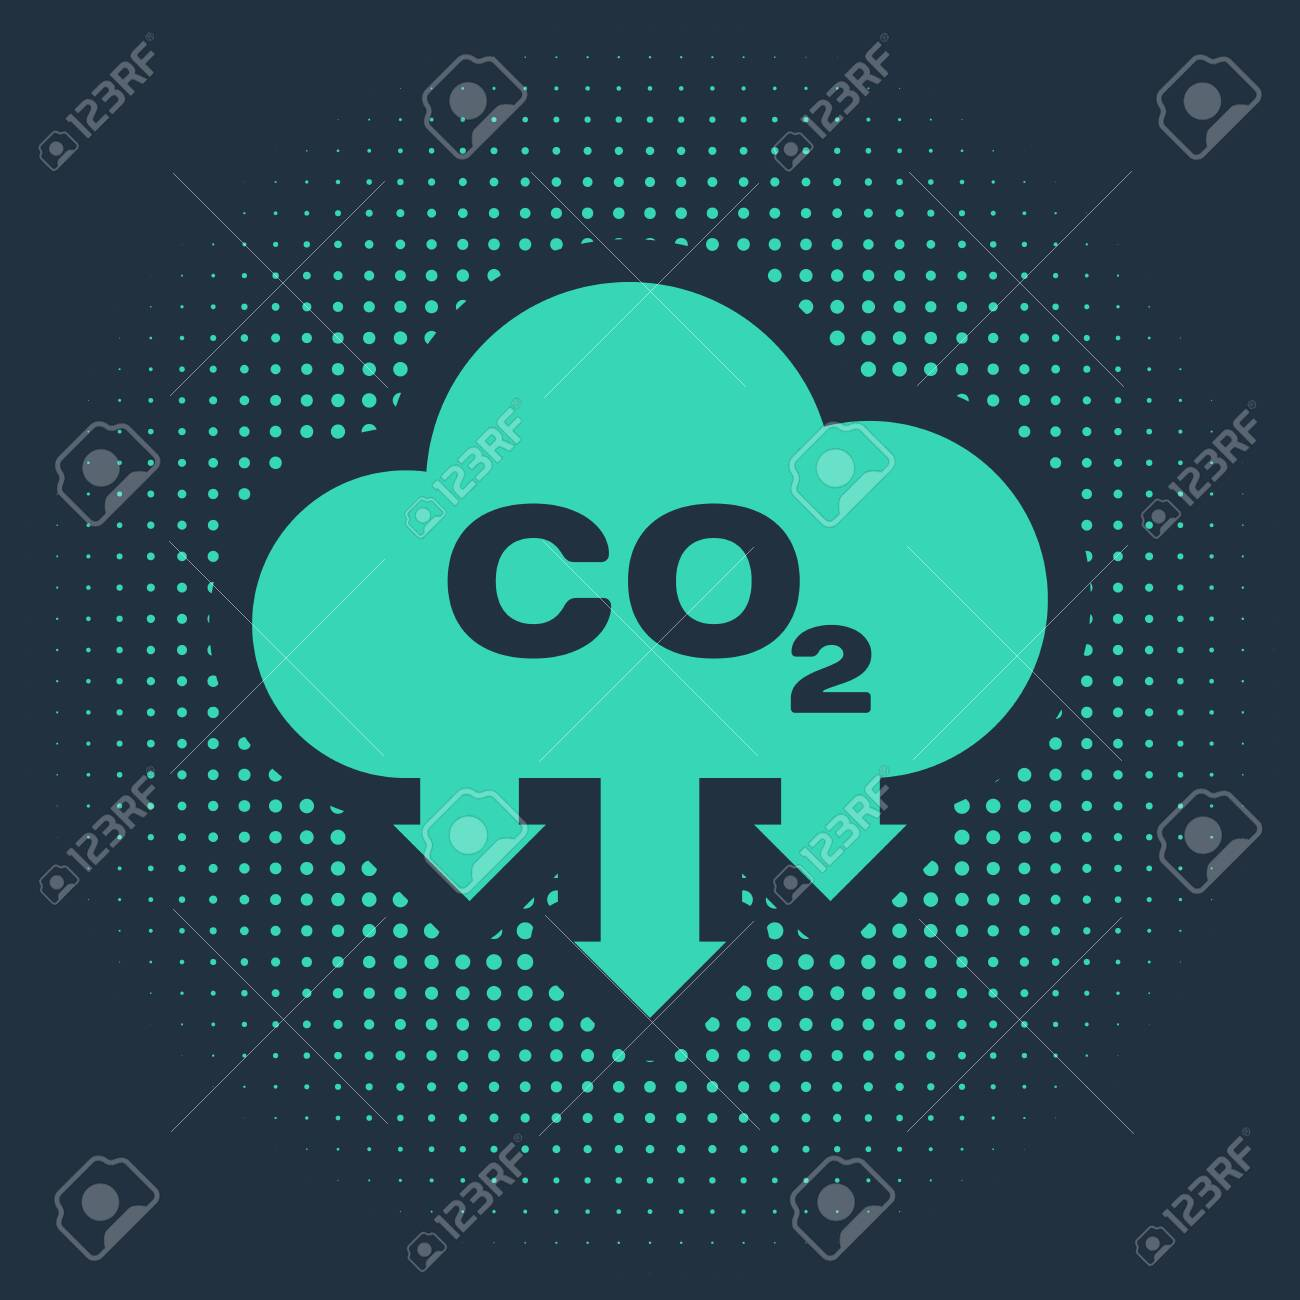 Green CO2 emissions in cloud icon isolated on blue background. Carbon dioxide formula symbol, smog pollution concept, environment concept. Abstract circle random dots. Vector Illustration - 134169317